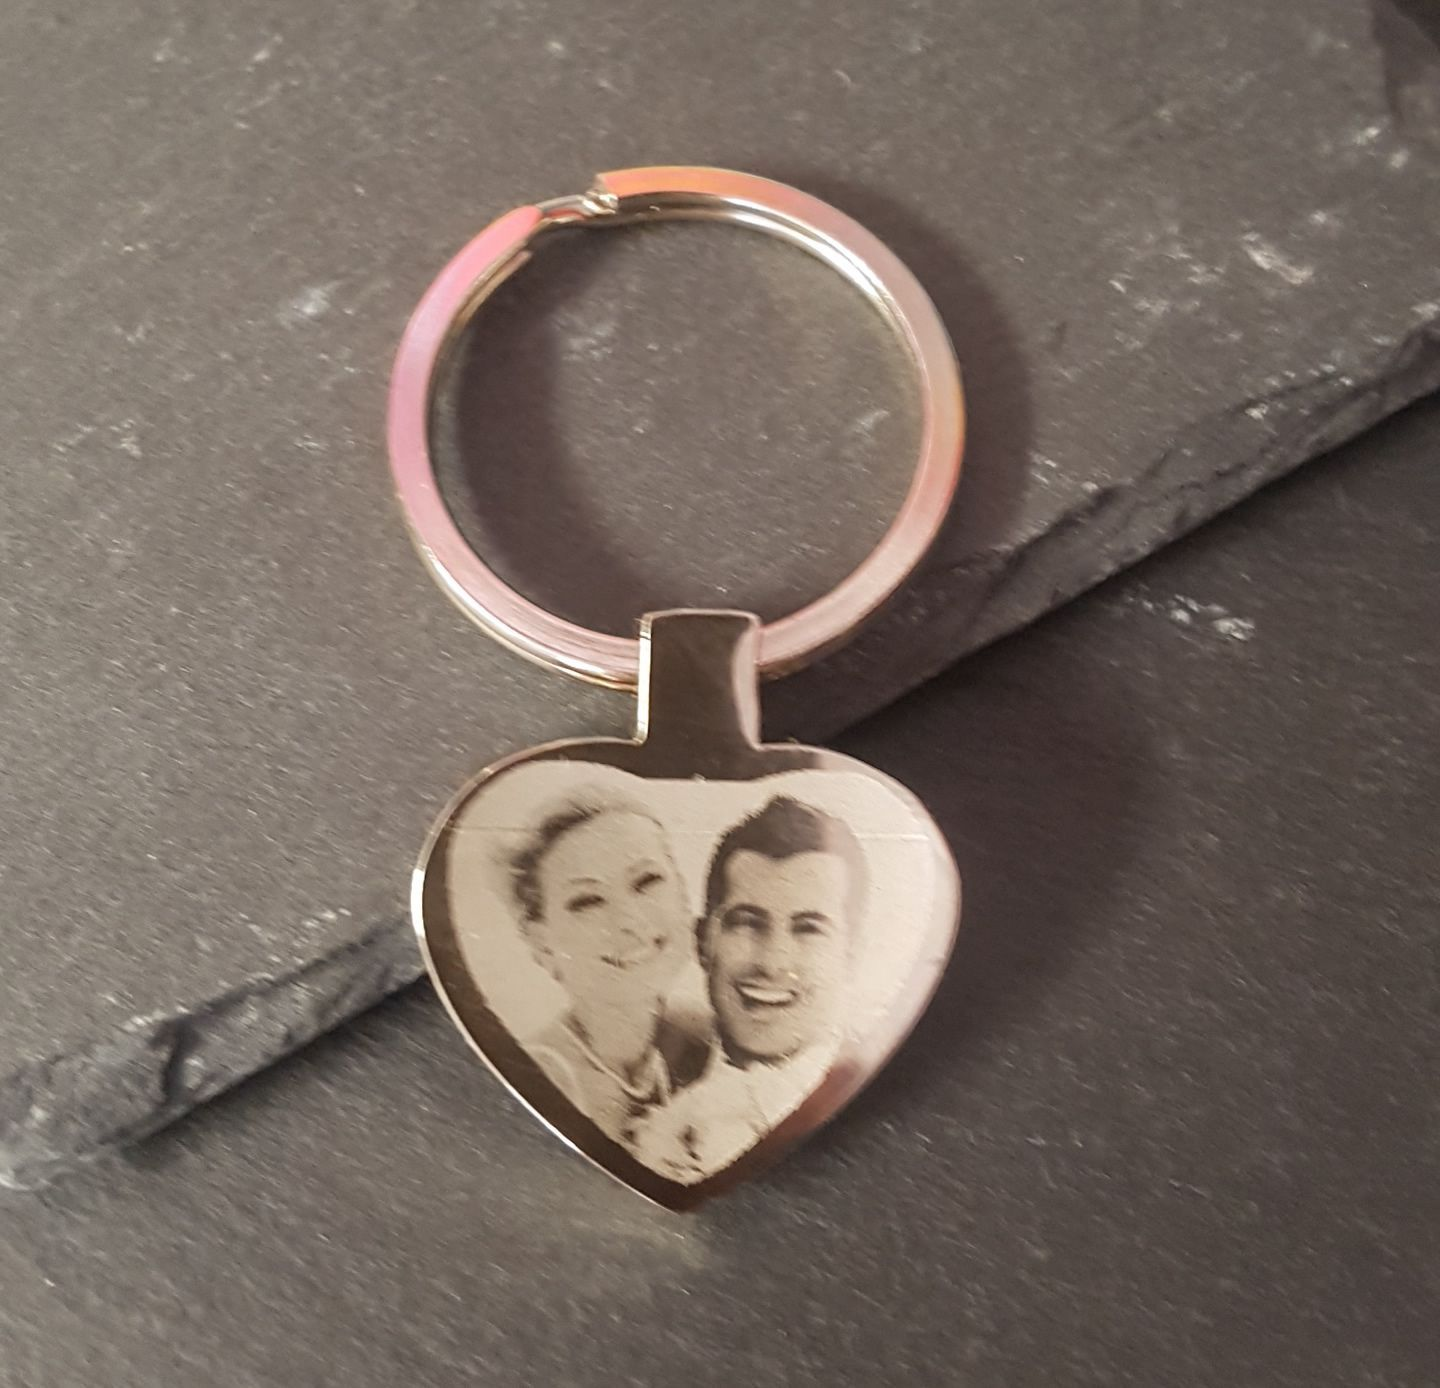 Little Gifts With Love - Personalised Photo Engraved Heart Keyring Keychain